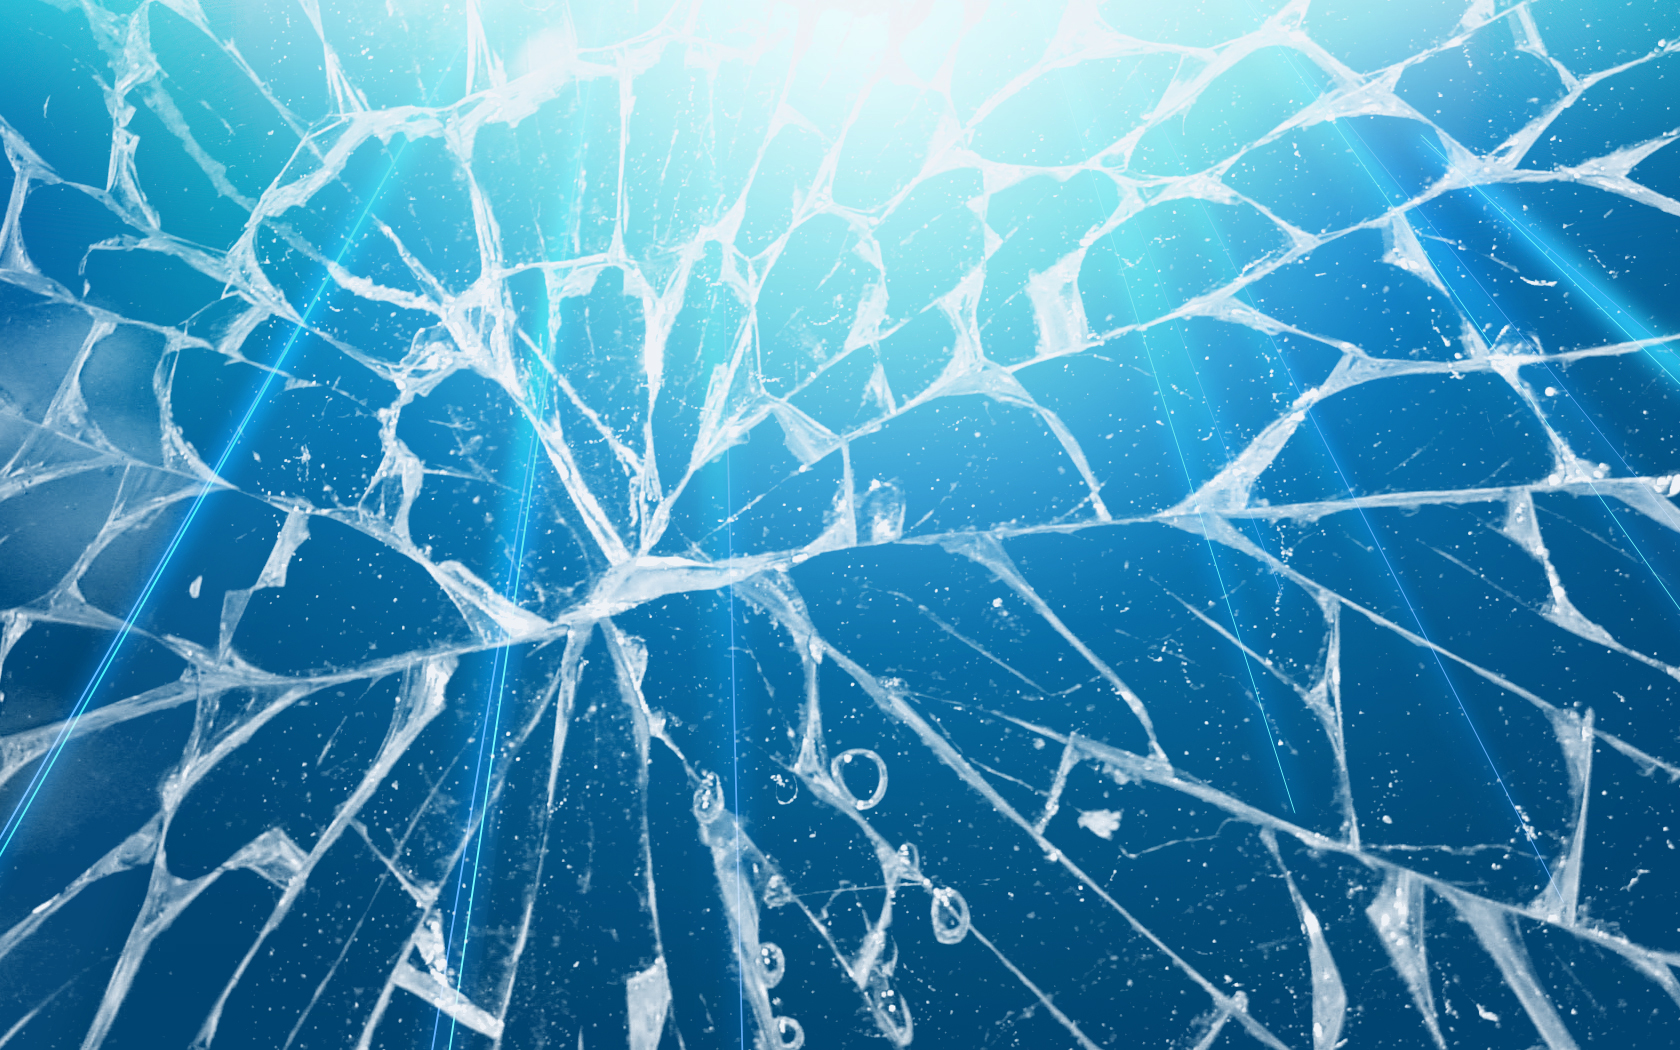 45 Realistic Cracked and Broken Screen Wallpapers 1680x1050